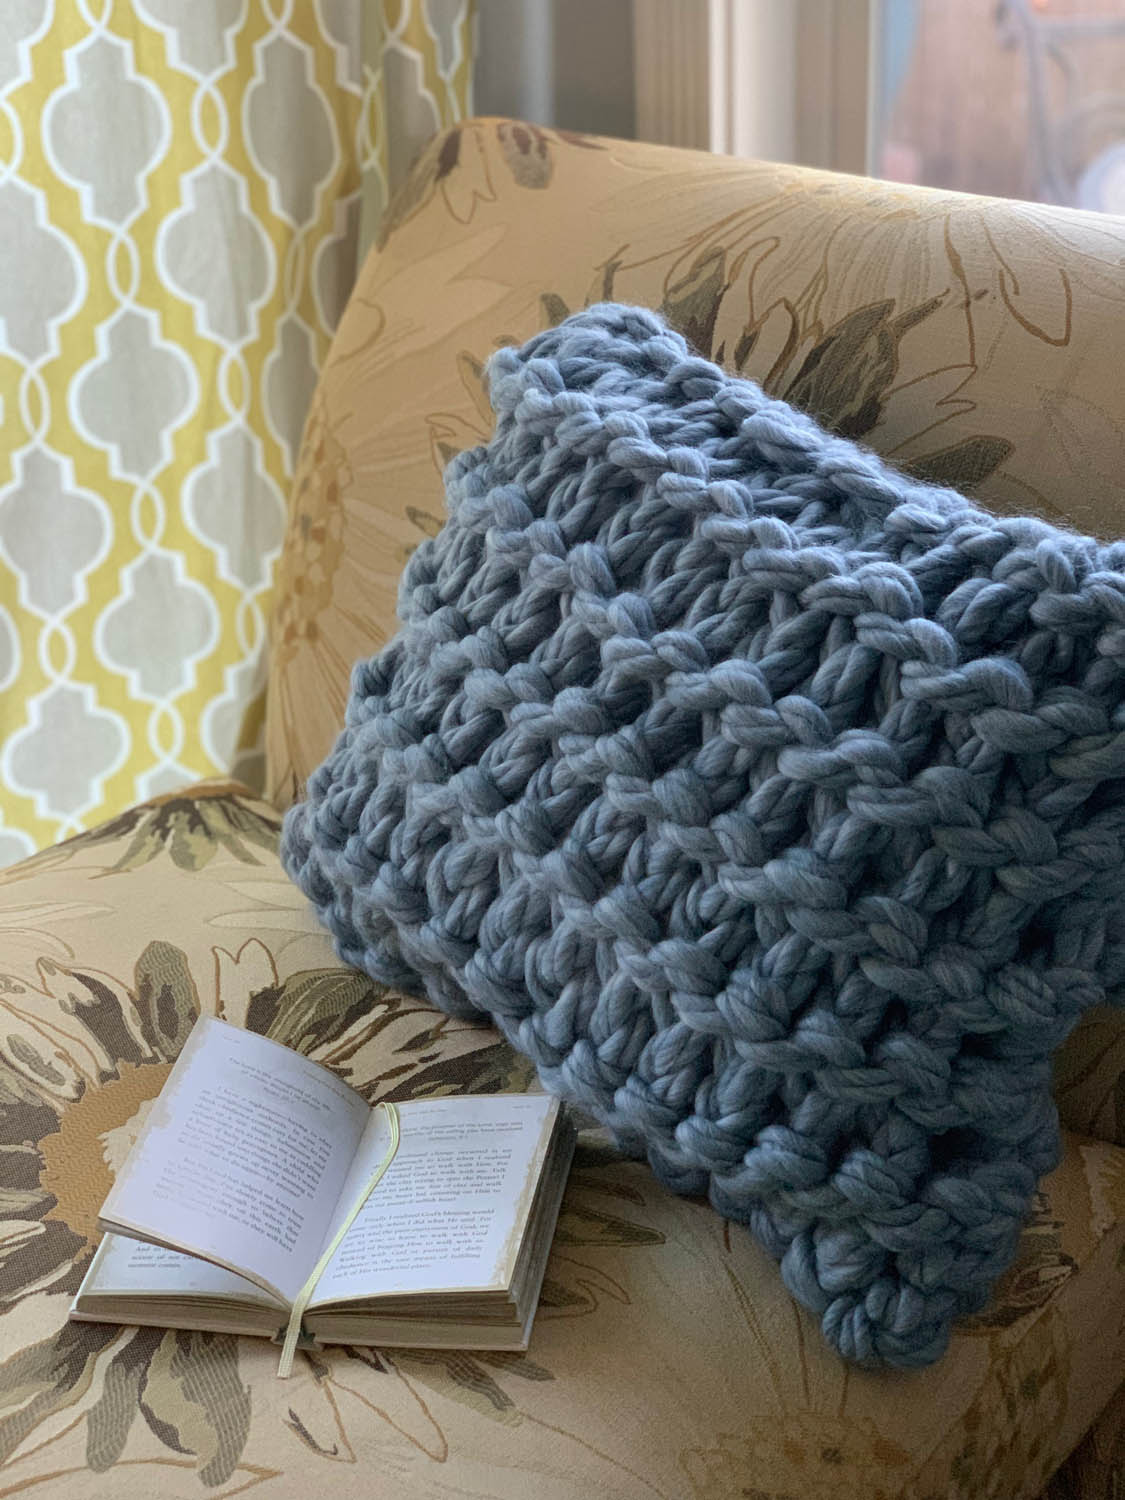 Have you tried knitting with jumbo yarn? - If so I'd love to see what you've made!